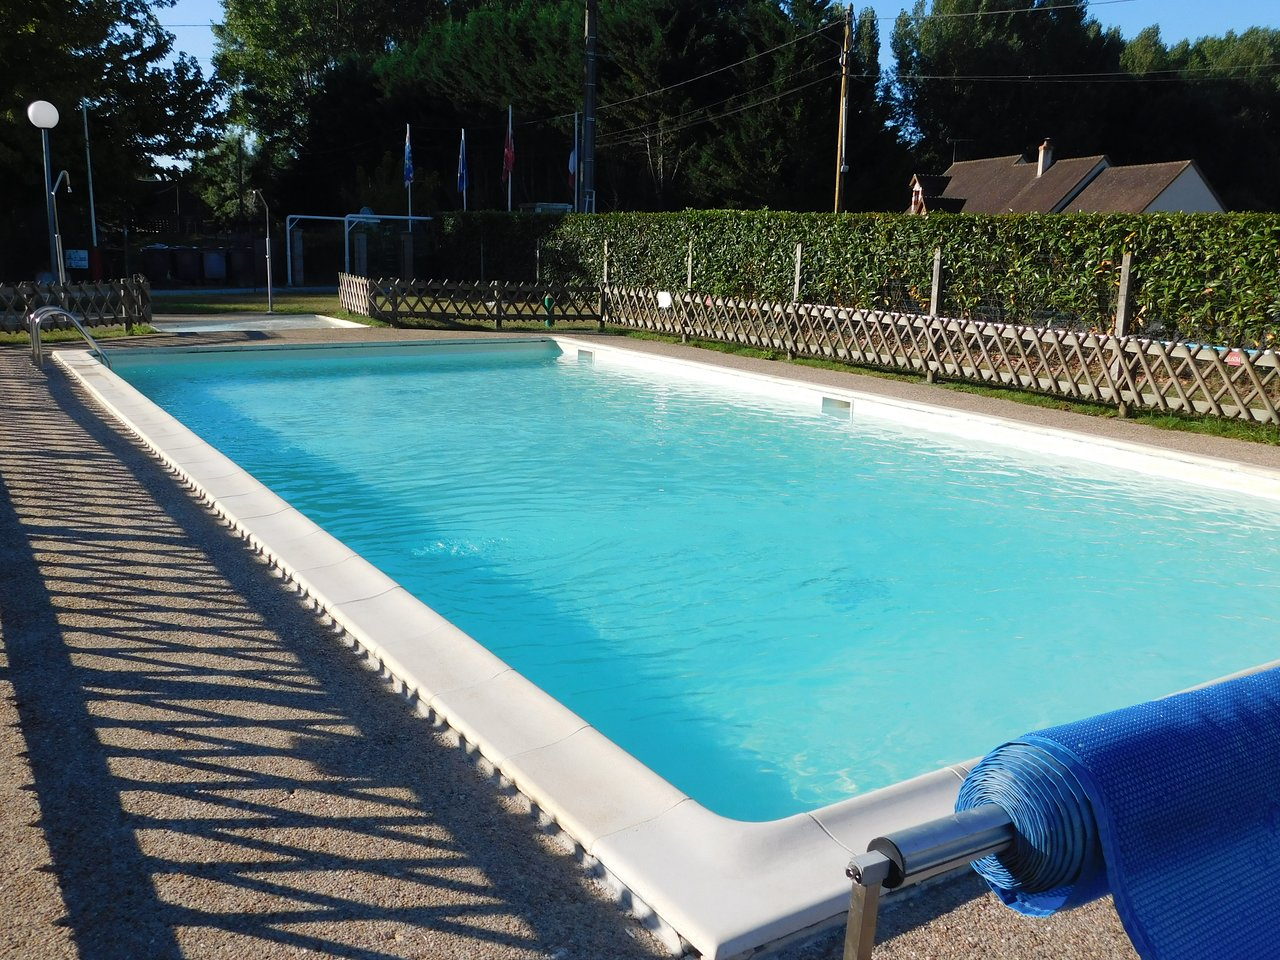 Camping Le Gue - Campground Reviews (Chemery, France ... intérieur Piscine Romorantin